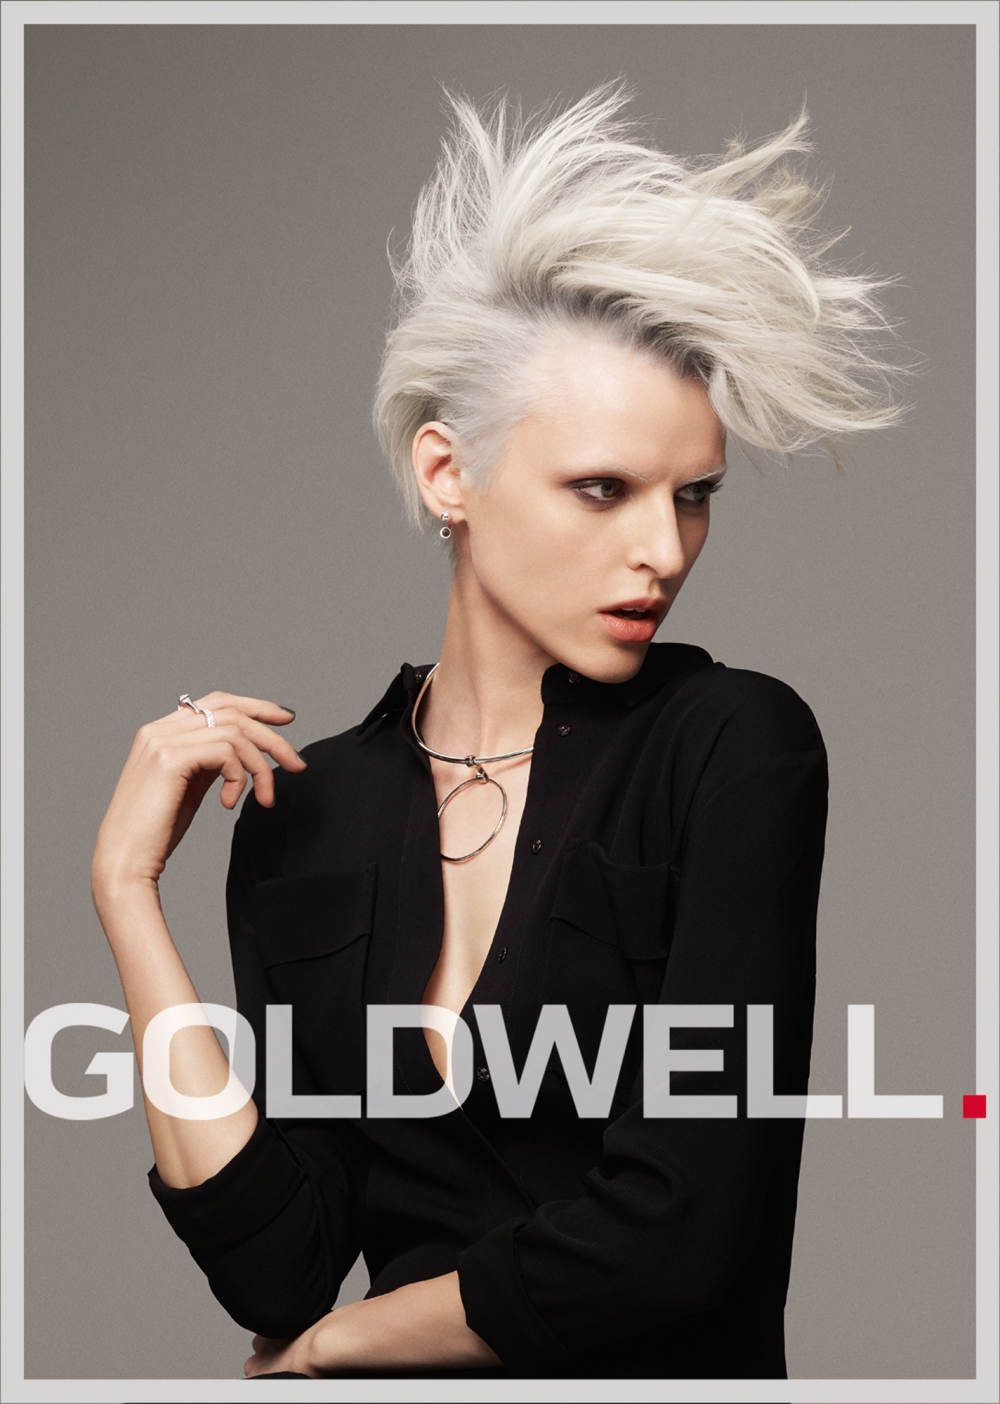 goldwell-by-ralph-mecke-3